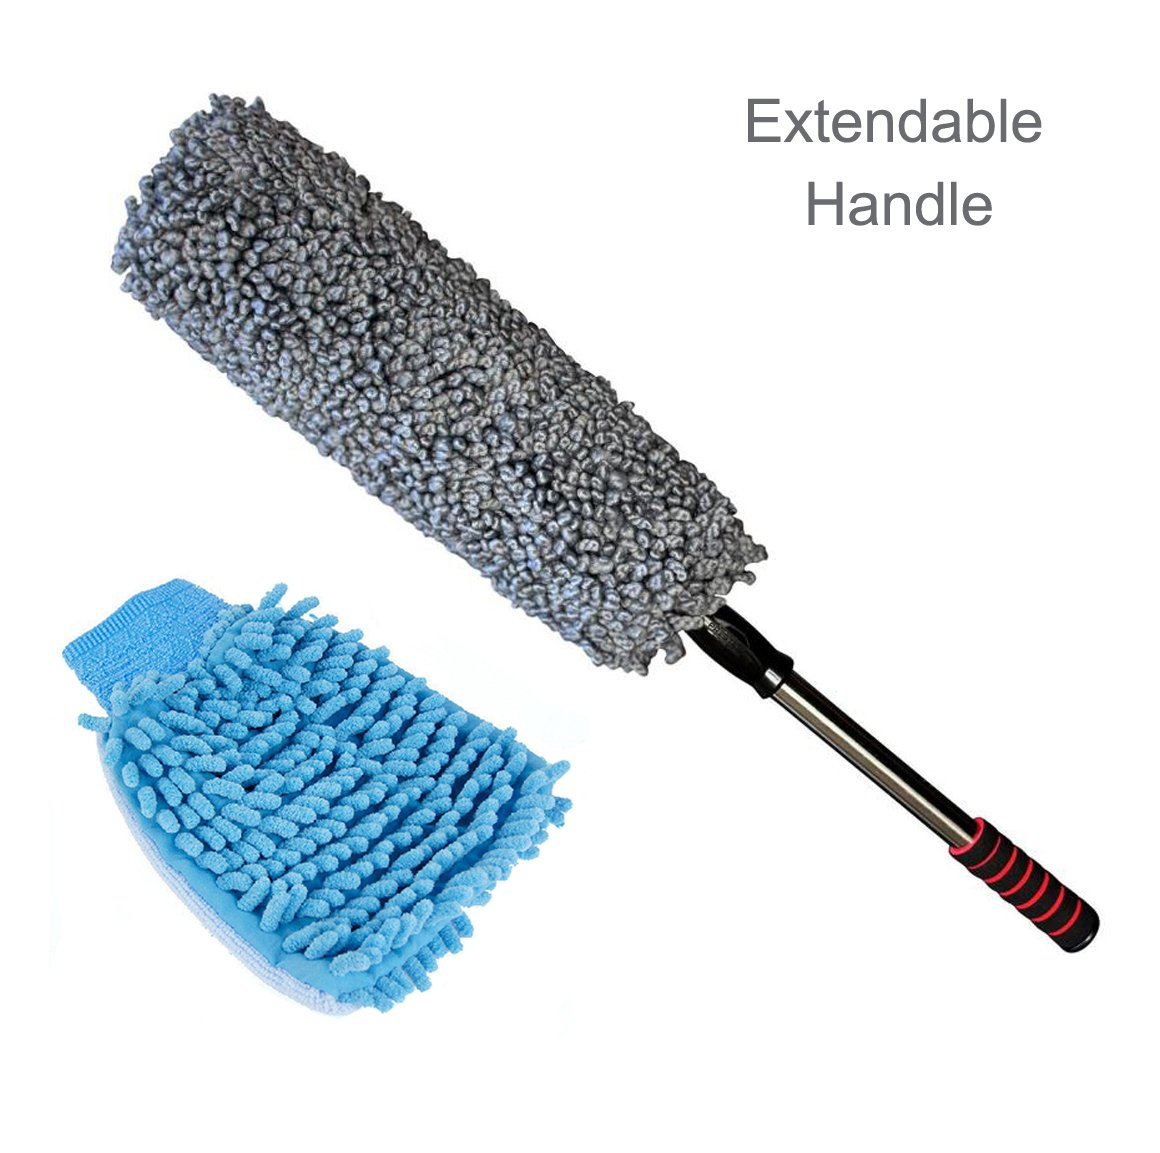 Emmix Car Duster - The Best Microfiber Multipurpose 31.5'' Car and Home Detail Duster - Exterior or Interior Use - Lint Free - Extendable Soft Handle with Microfiber Car Wash Mitt,Grey